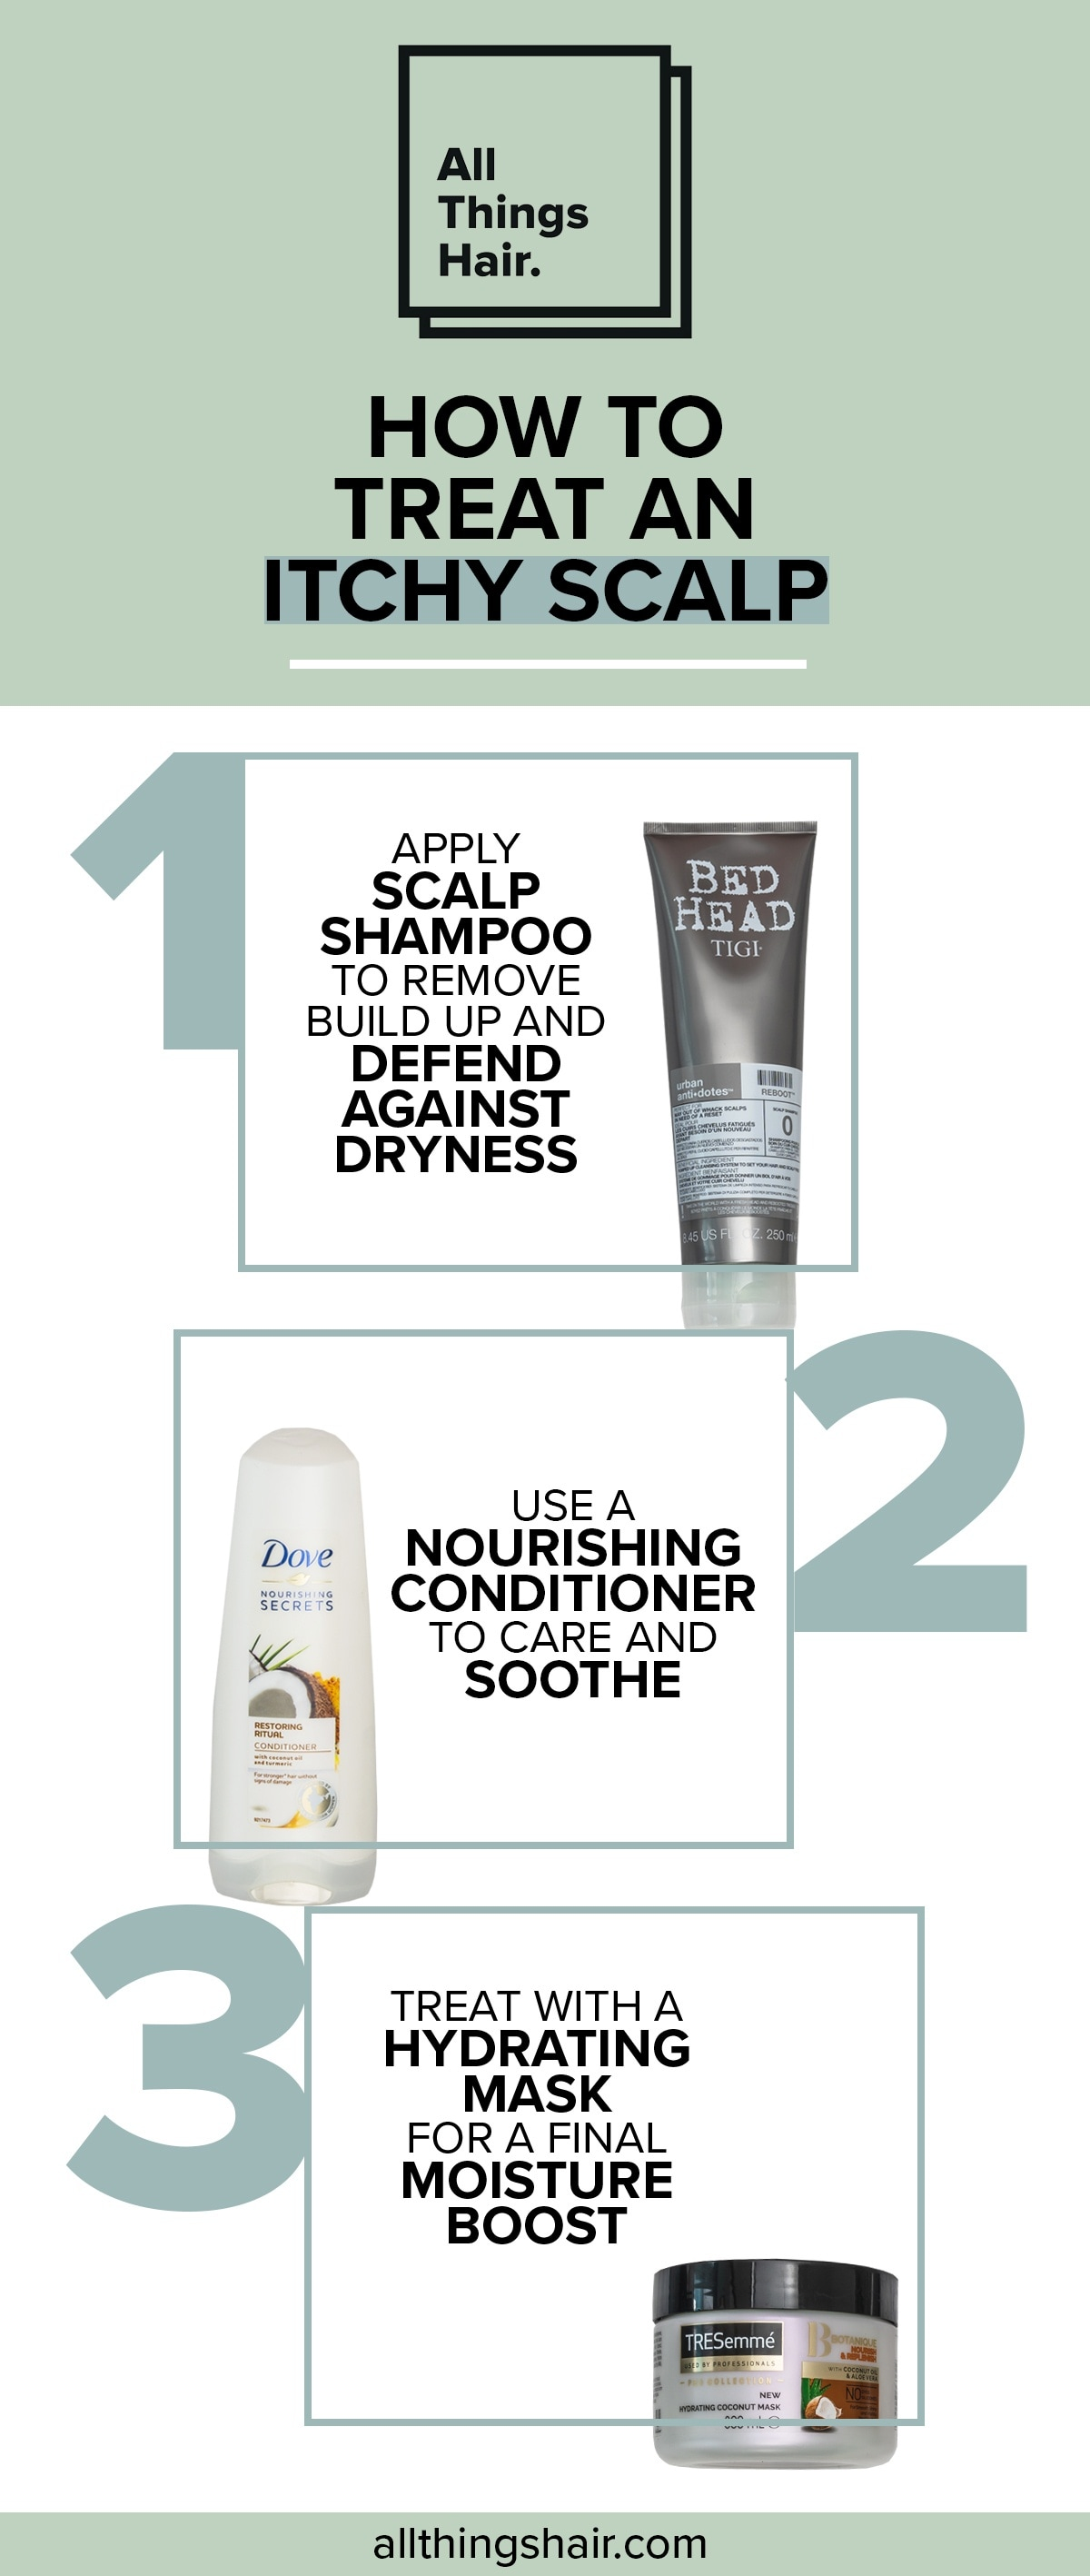 All Things Hair UK infographic of how to treat itchy scalp, with product recommendations